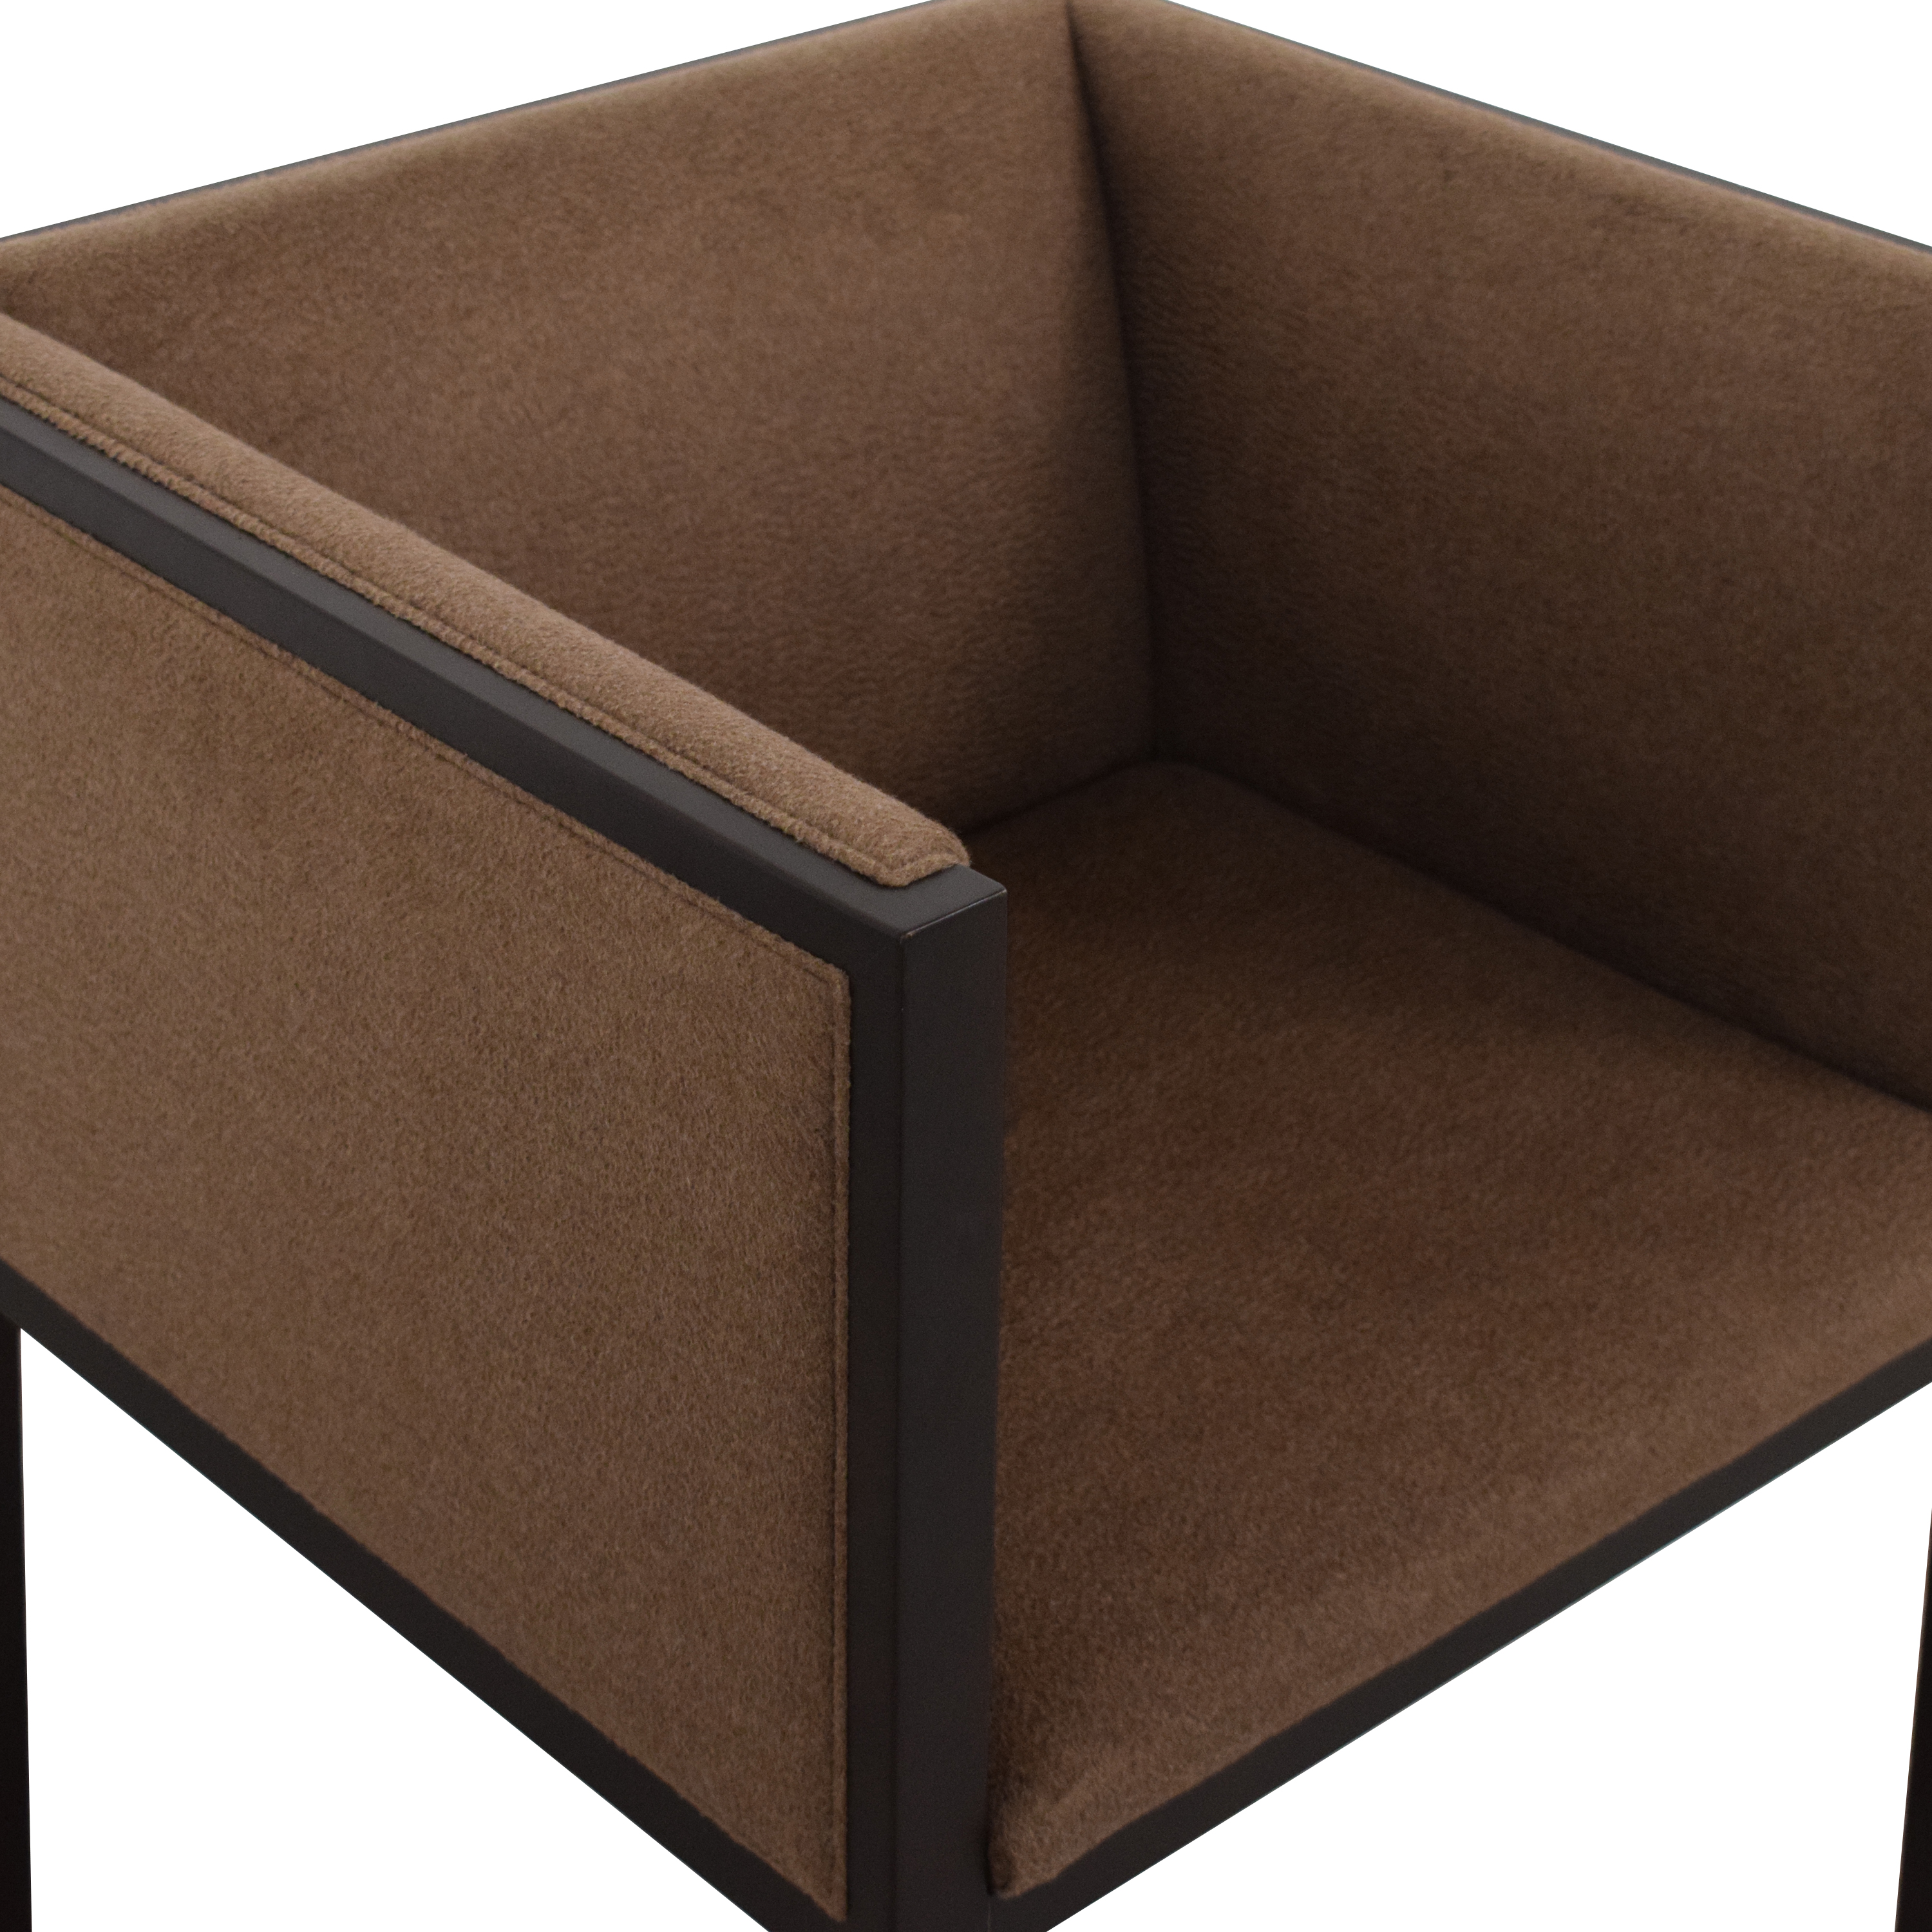 Hudson Furniture & Bedding Hudson Furniture & Bedding Contemporary Dining Chair dimensions